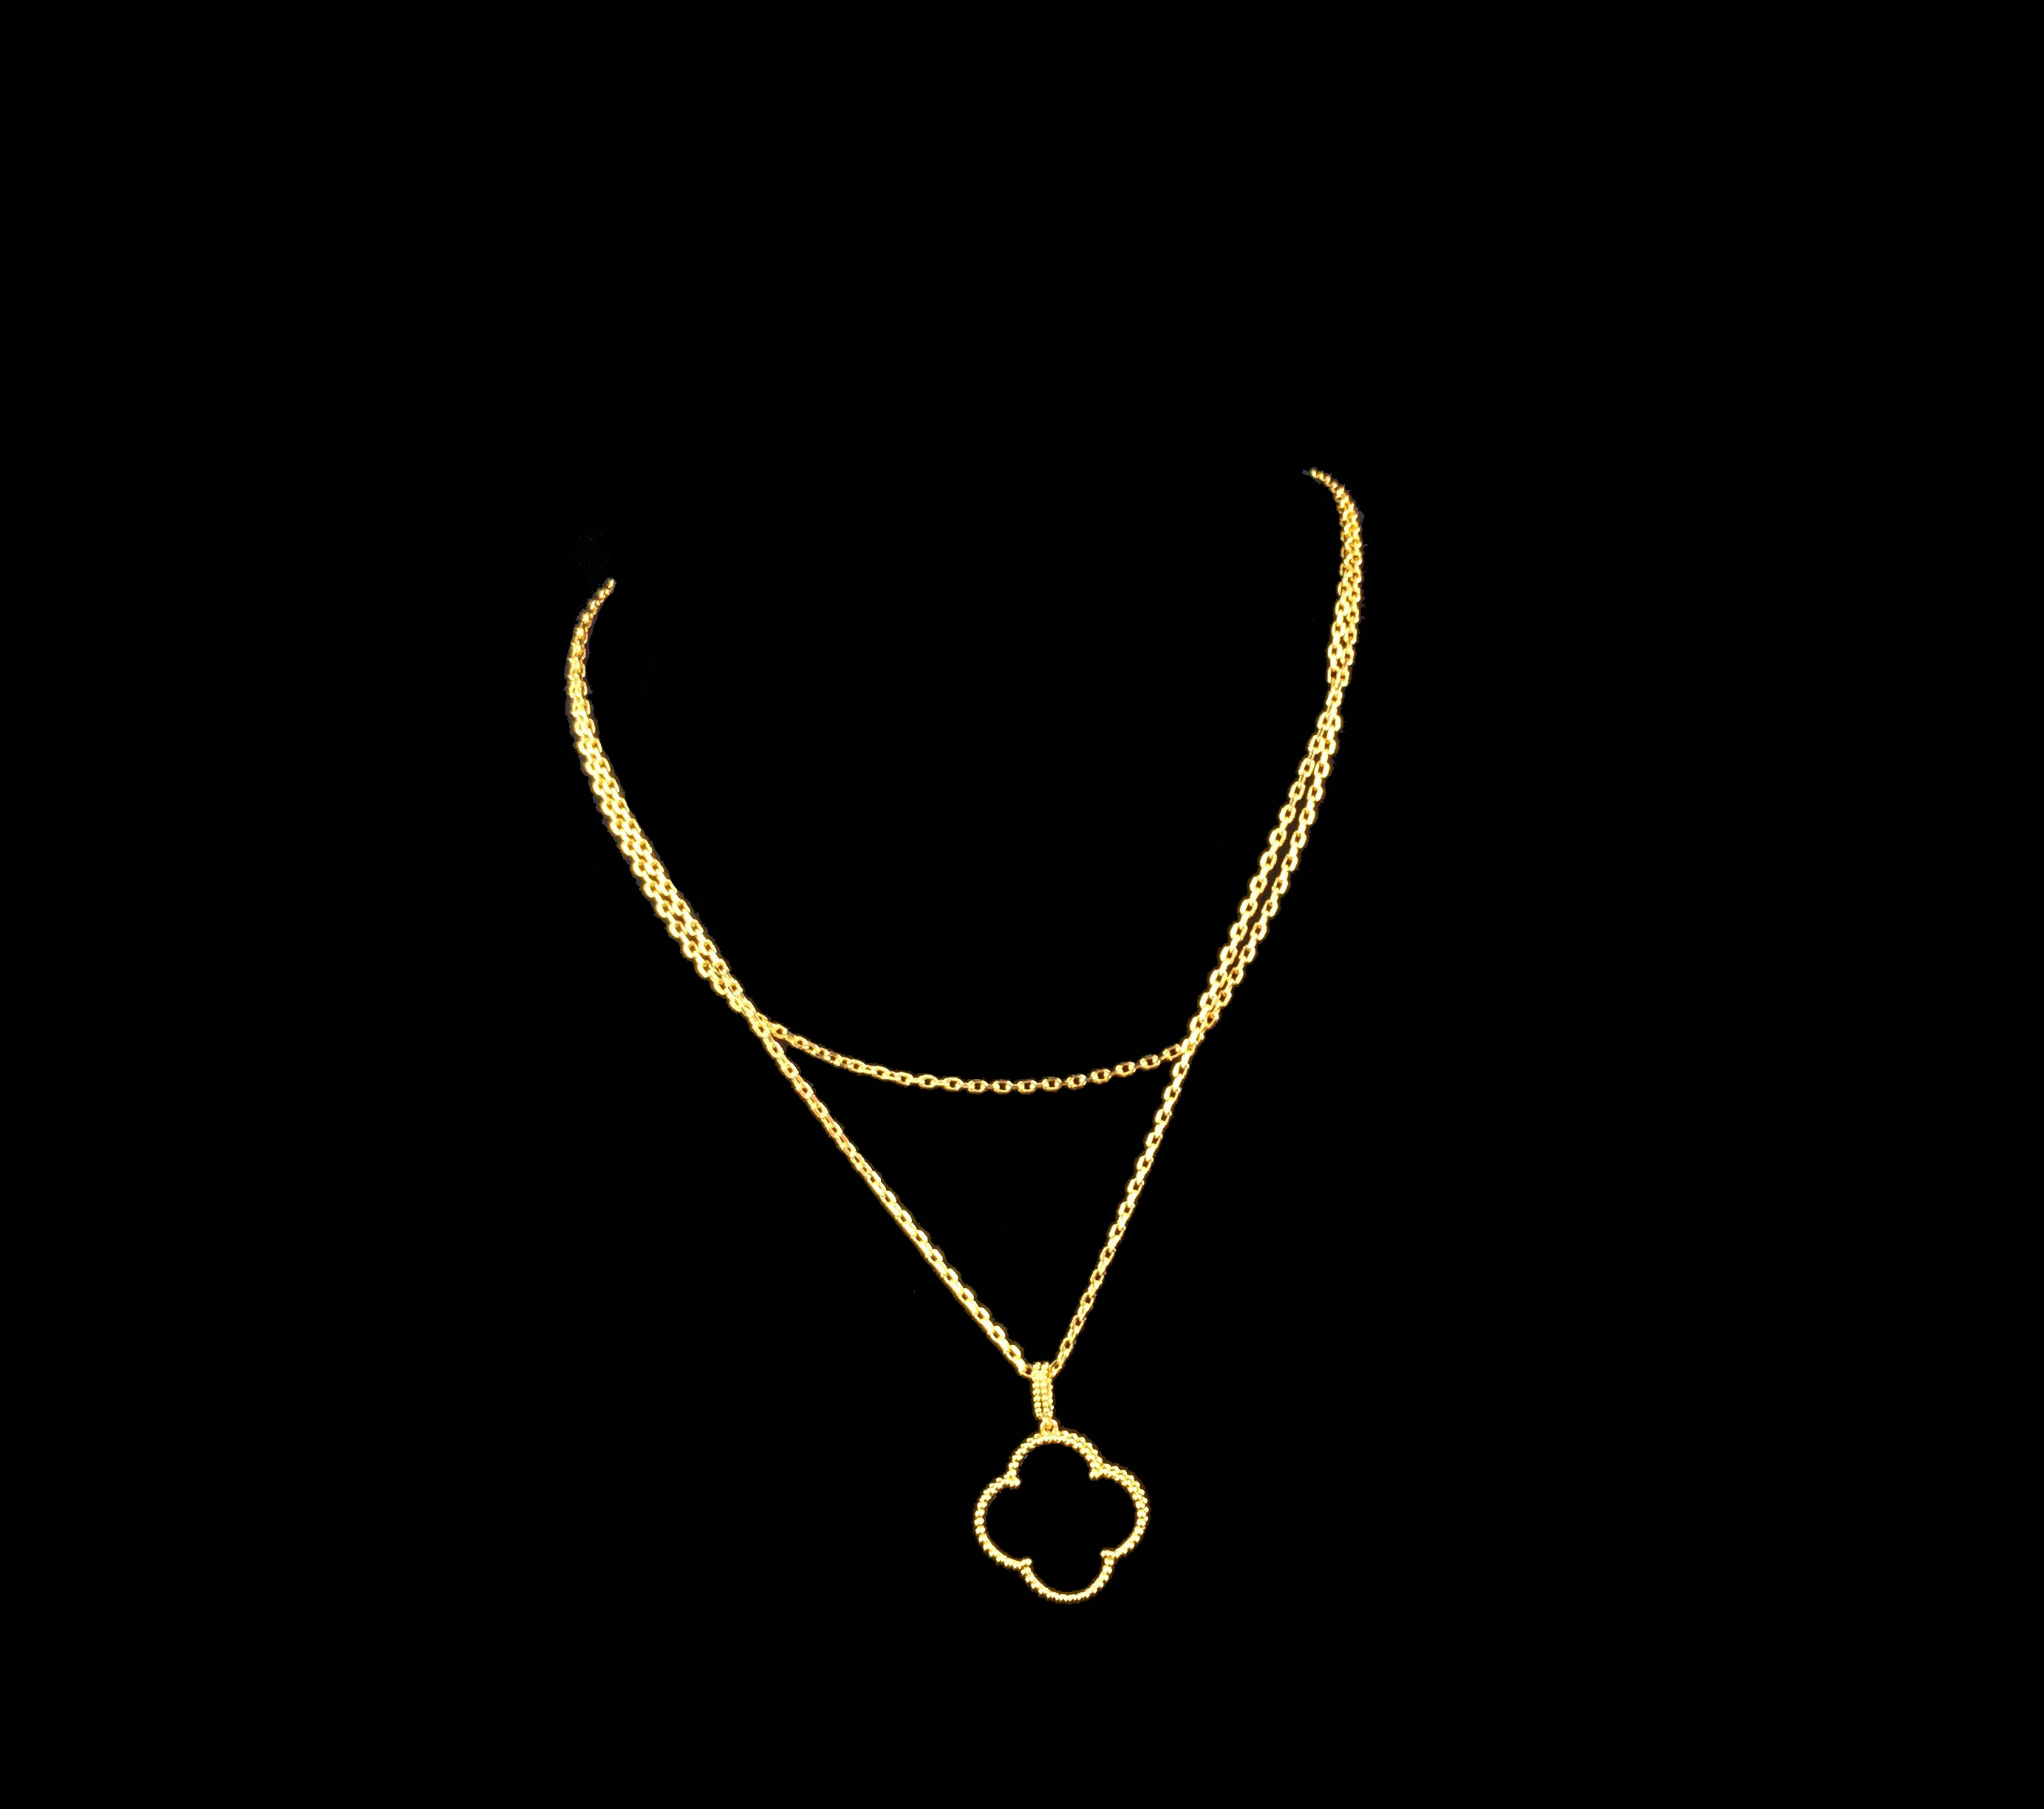 jewellery gold jewelry chain co discounted necklace mens products image product the